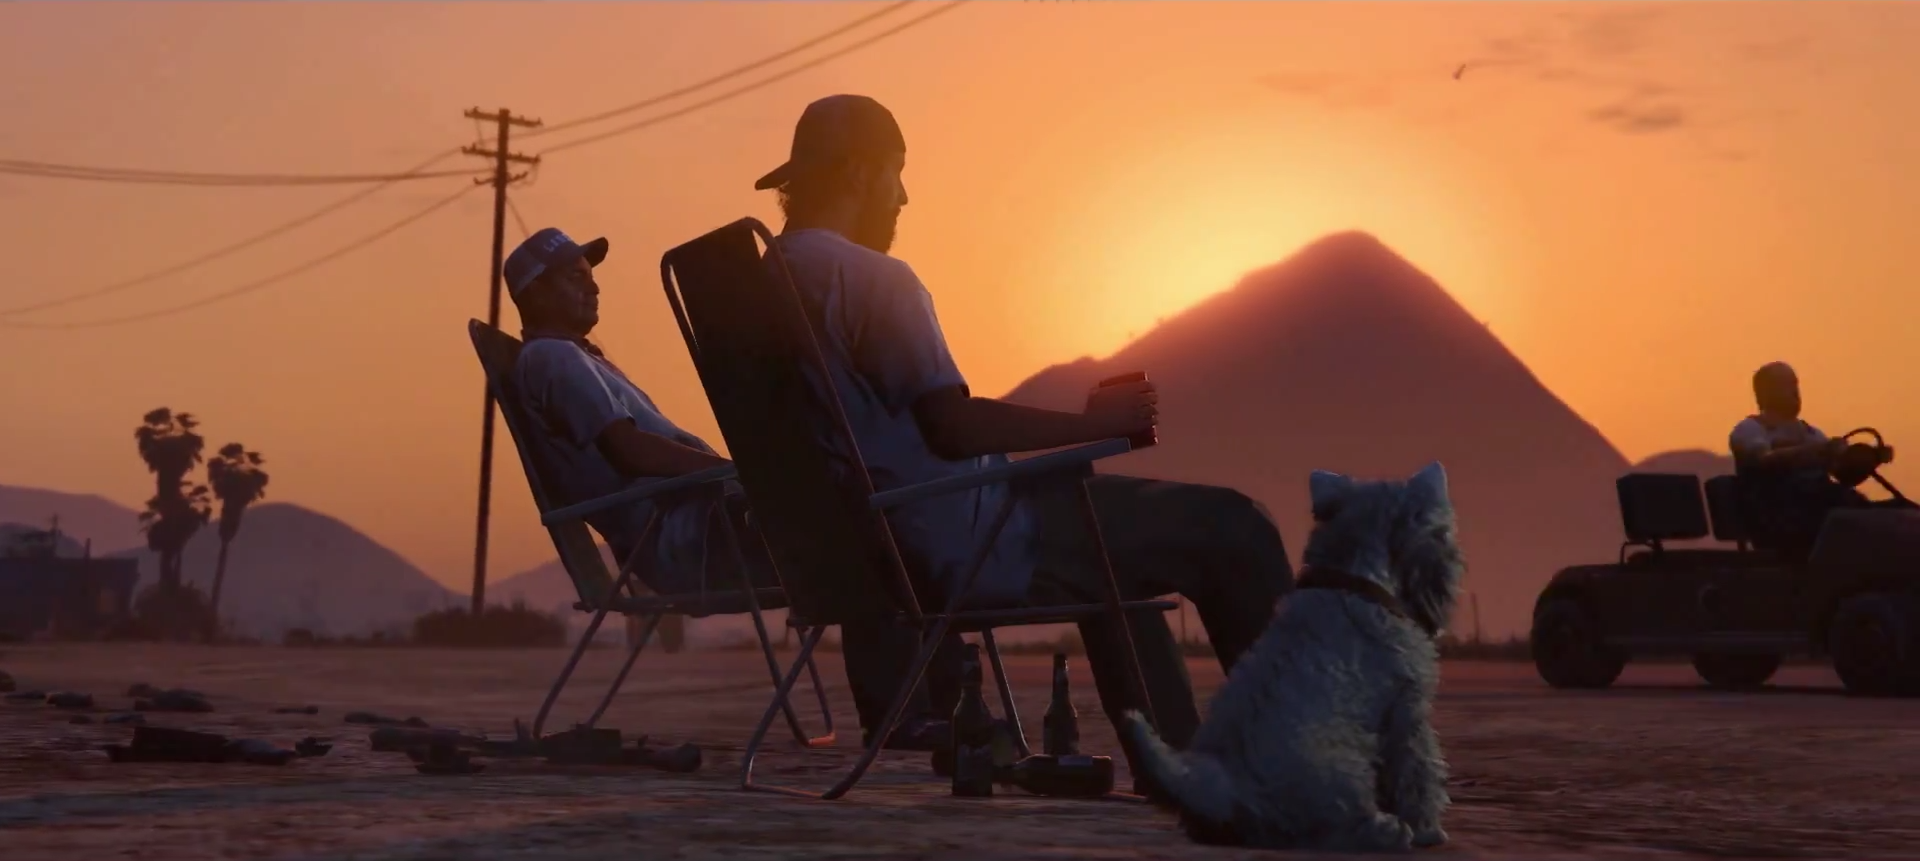 Here's The Launch Trailer For Grand Theft Auto V On PS4/Xbox One